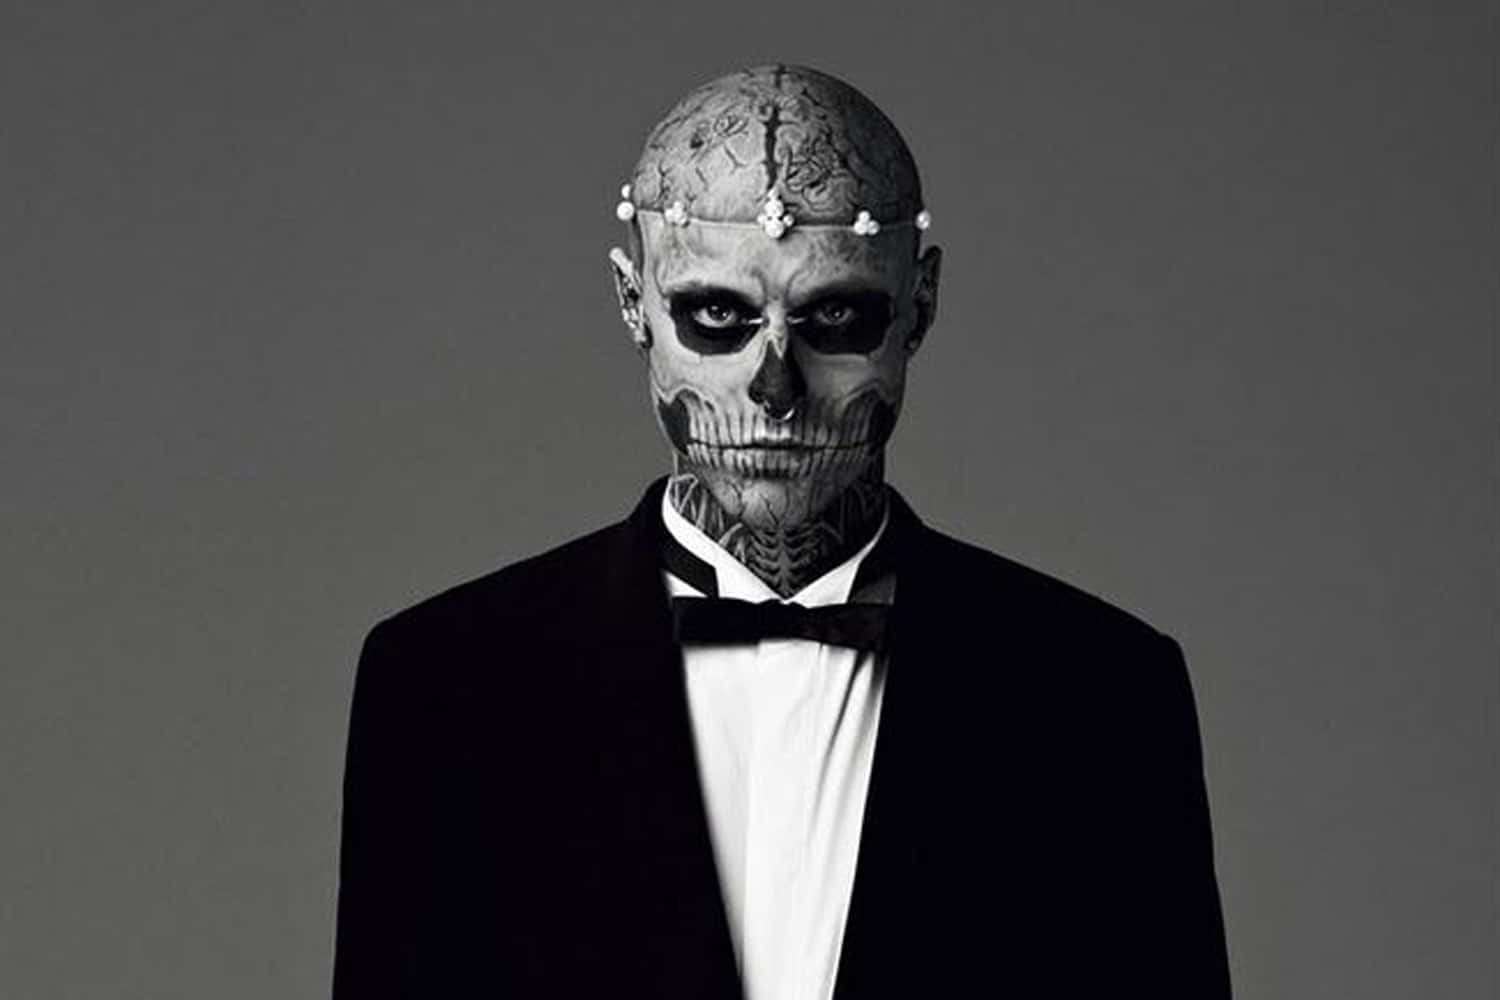 Zombie Boy from Lady Gaga music video dead at 32